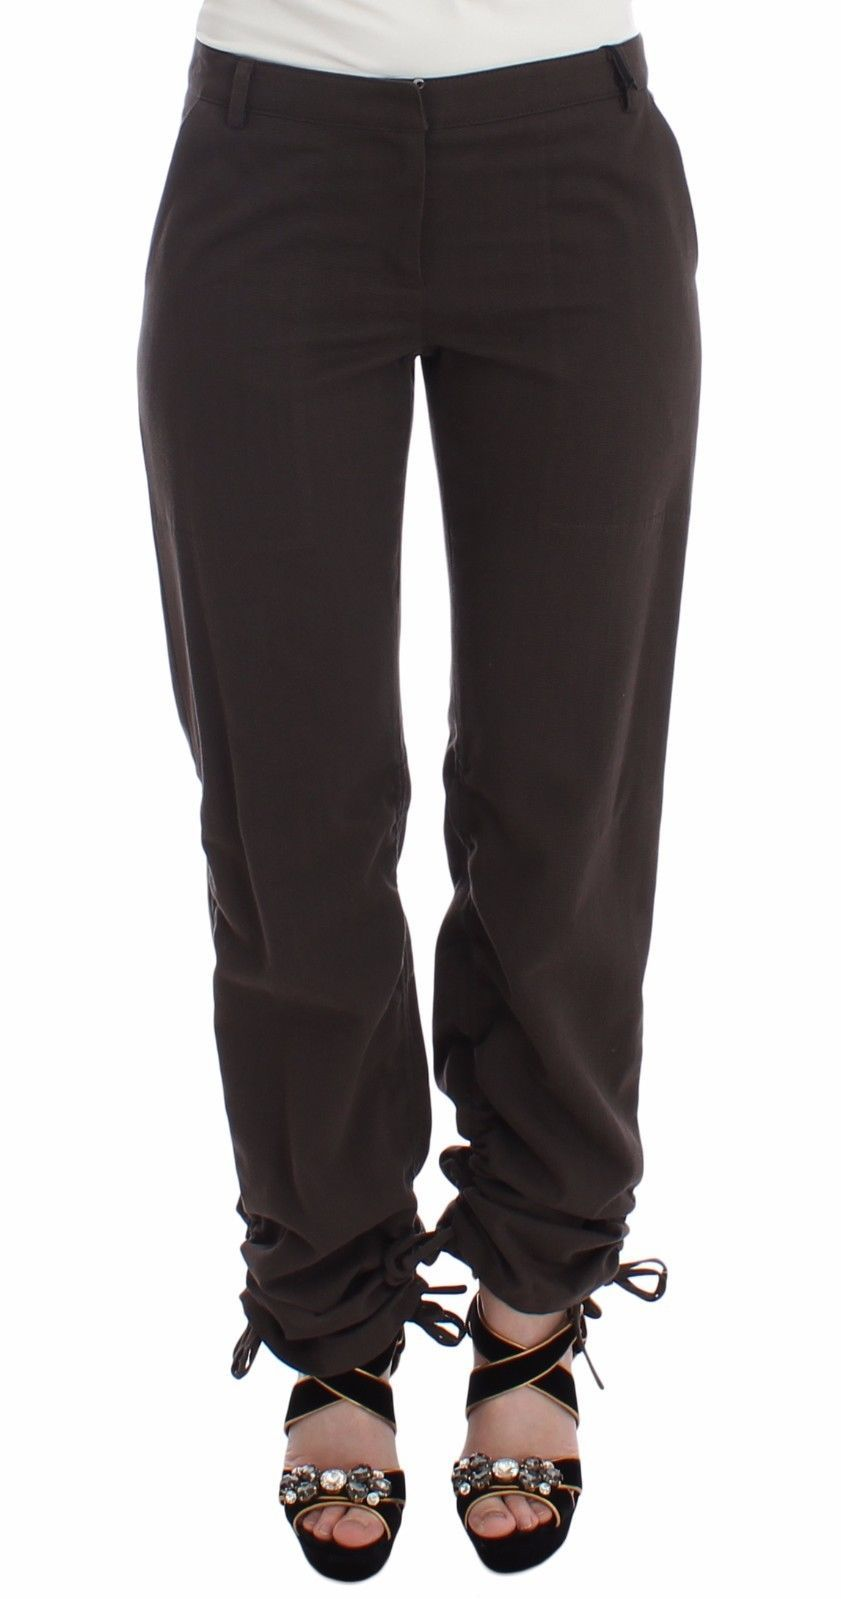 Ermanno Scervino Women's Chinos Trouser Brown MOM26757 - IT38|XS